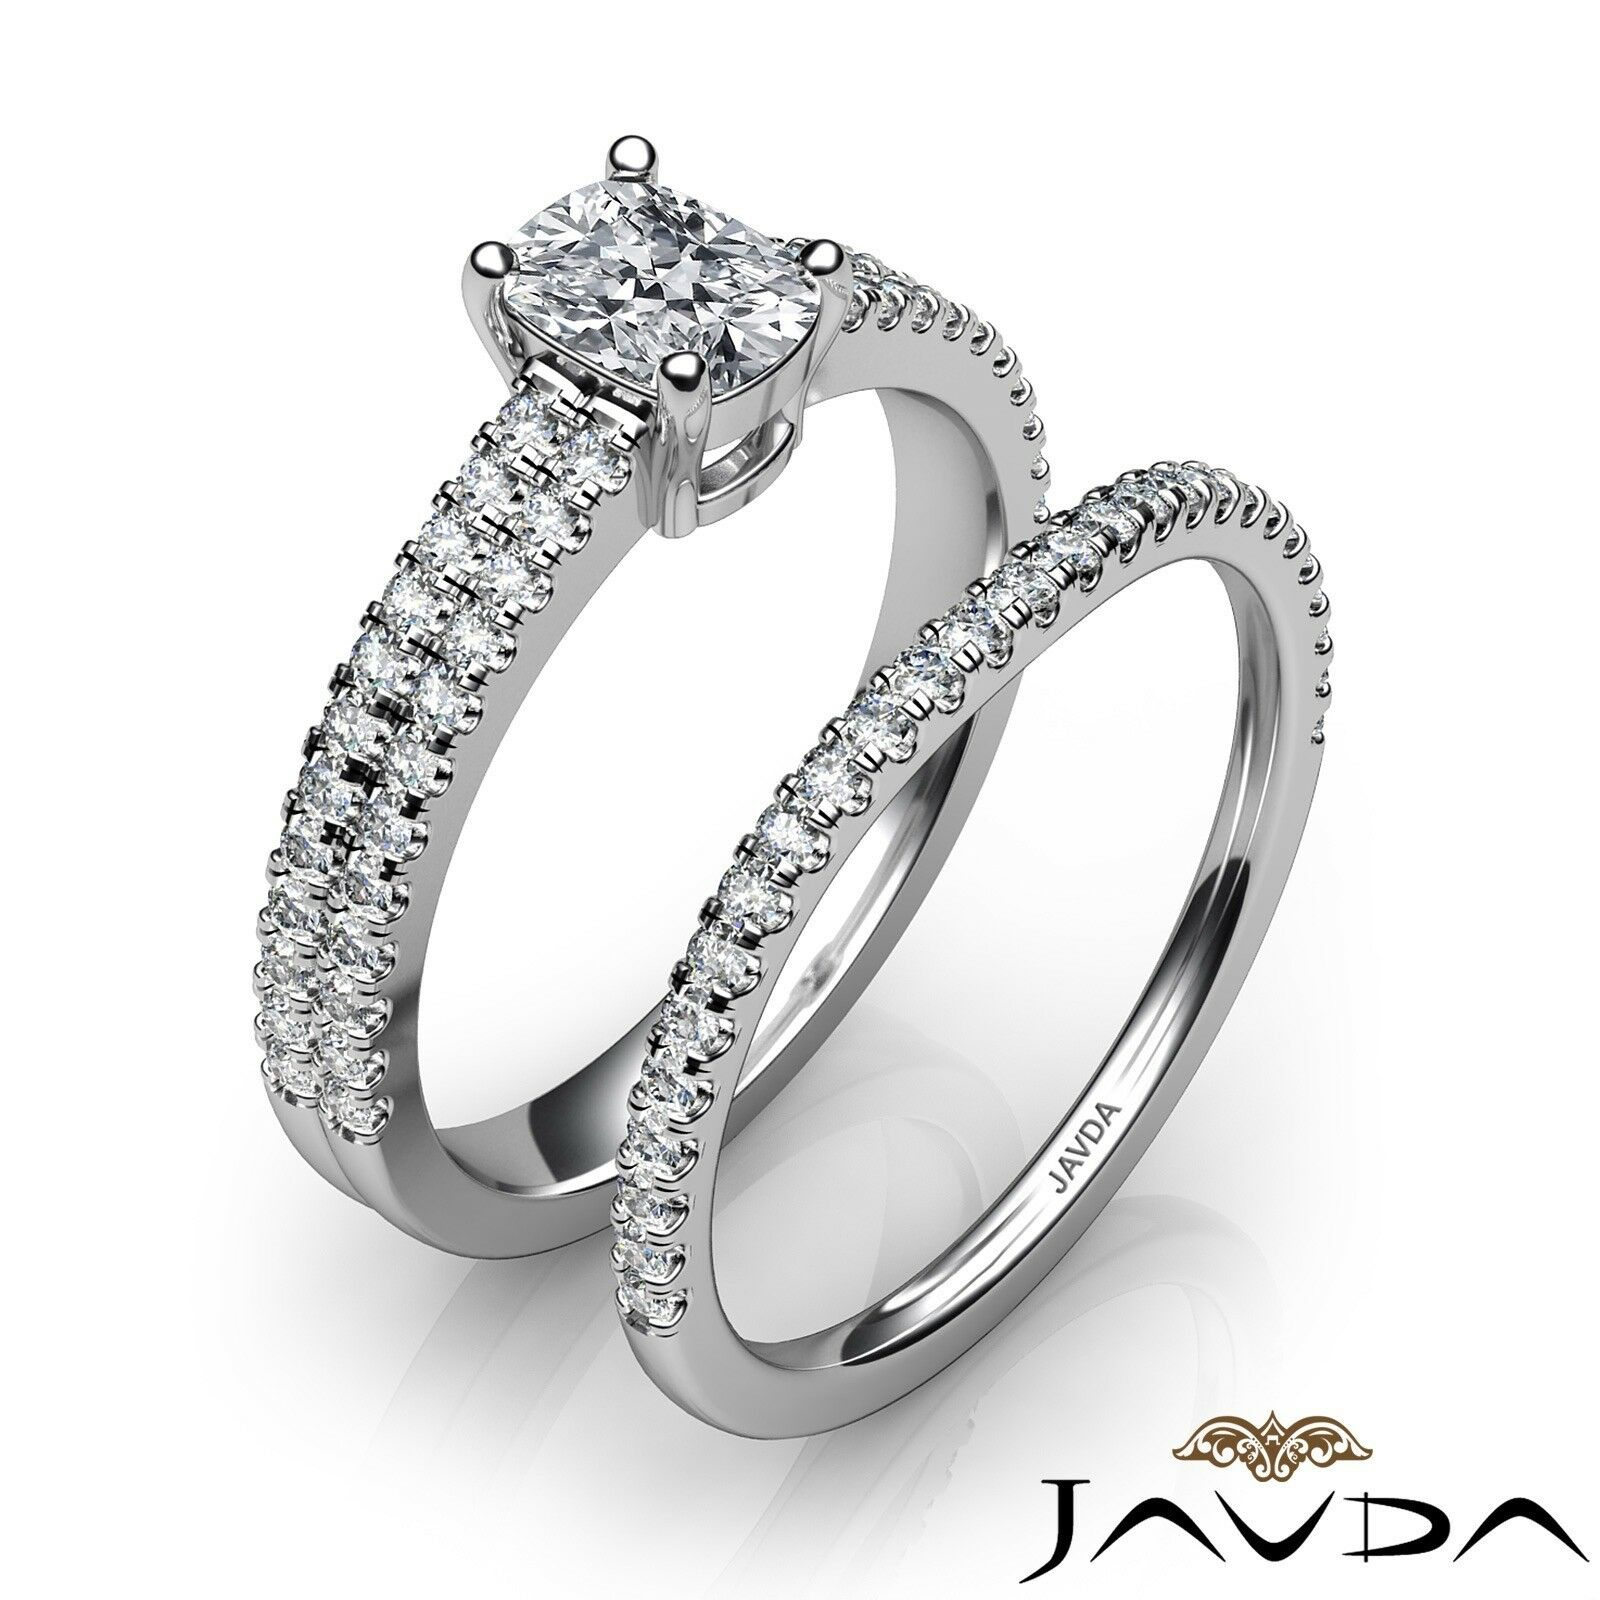 1.54ctw Bridal Scalloped Pave Cushion Diamond Engagement Ring GIA G-SI1 W Gold 2